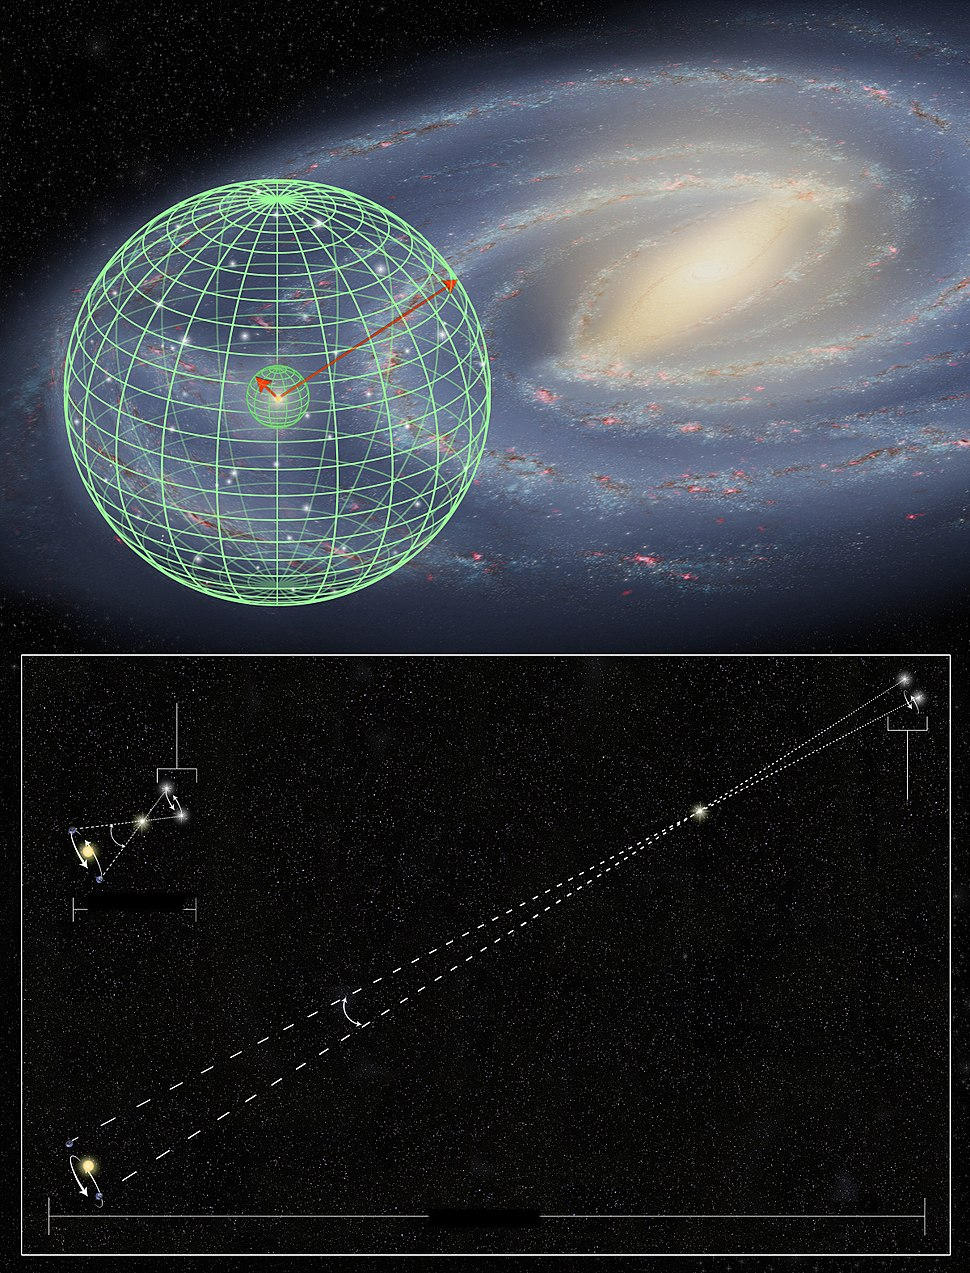 Hubble stretches the stellar tape measure ten times further